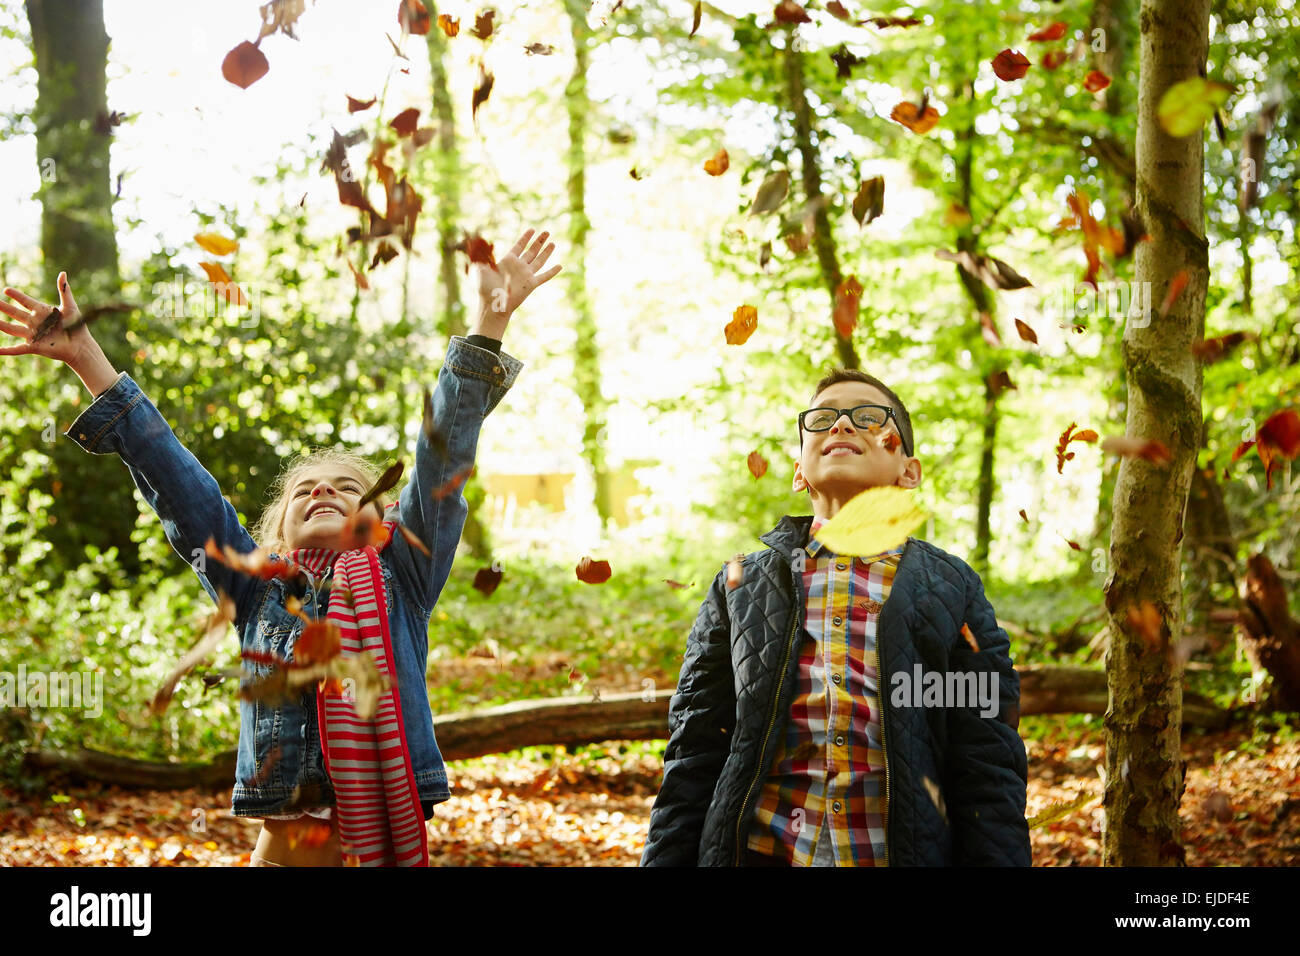 A girl and her brother throwing autumn leaves in the air. - Stock Image